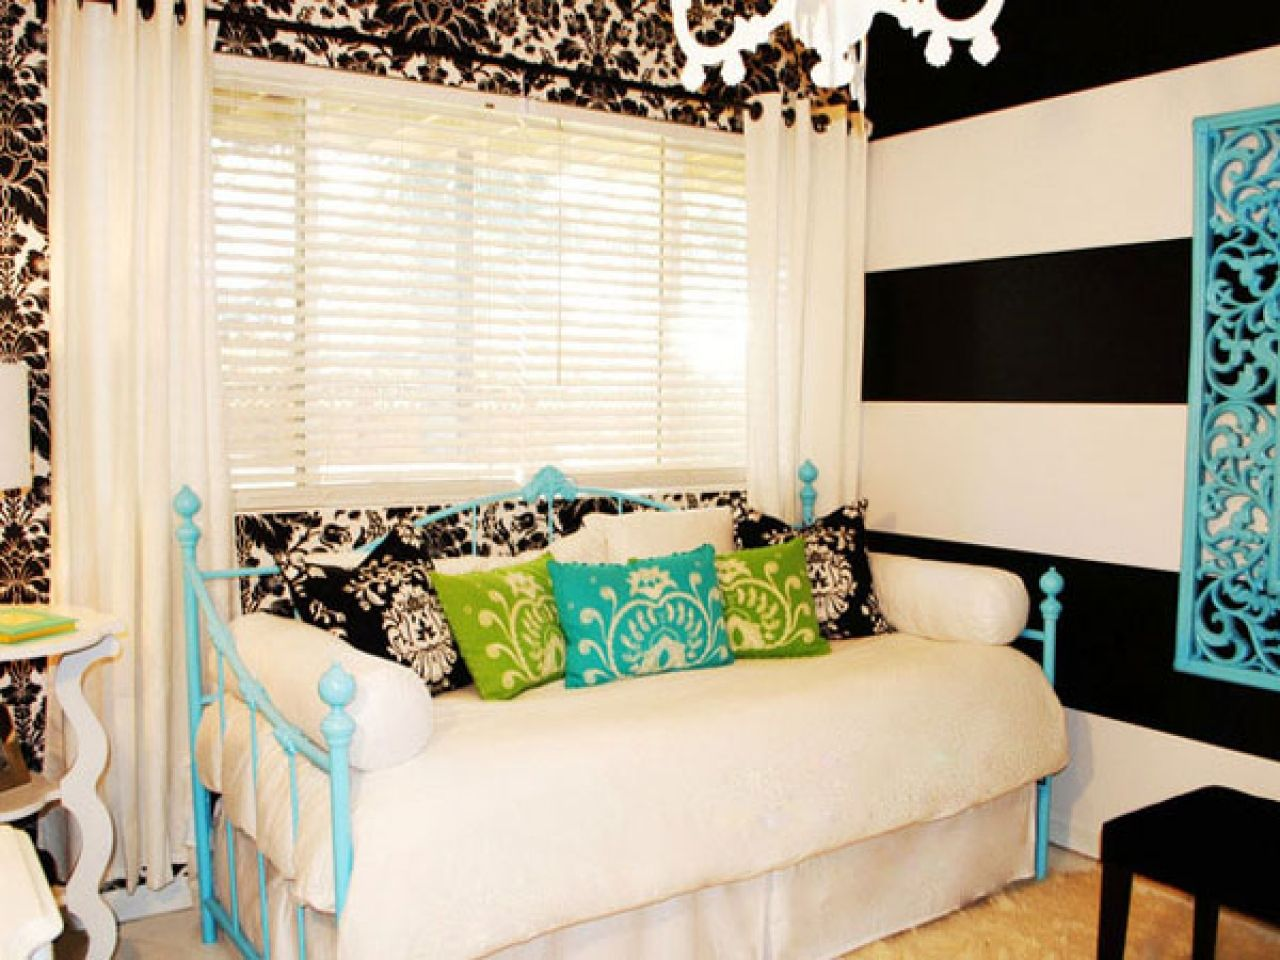 Bedroom paint ideas for girls - Finding Design For Teenage Girl Room Ideas Every Teenage Girl Should Have Her Own Bedroom